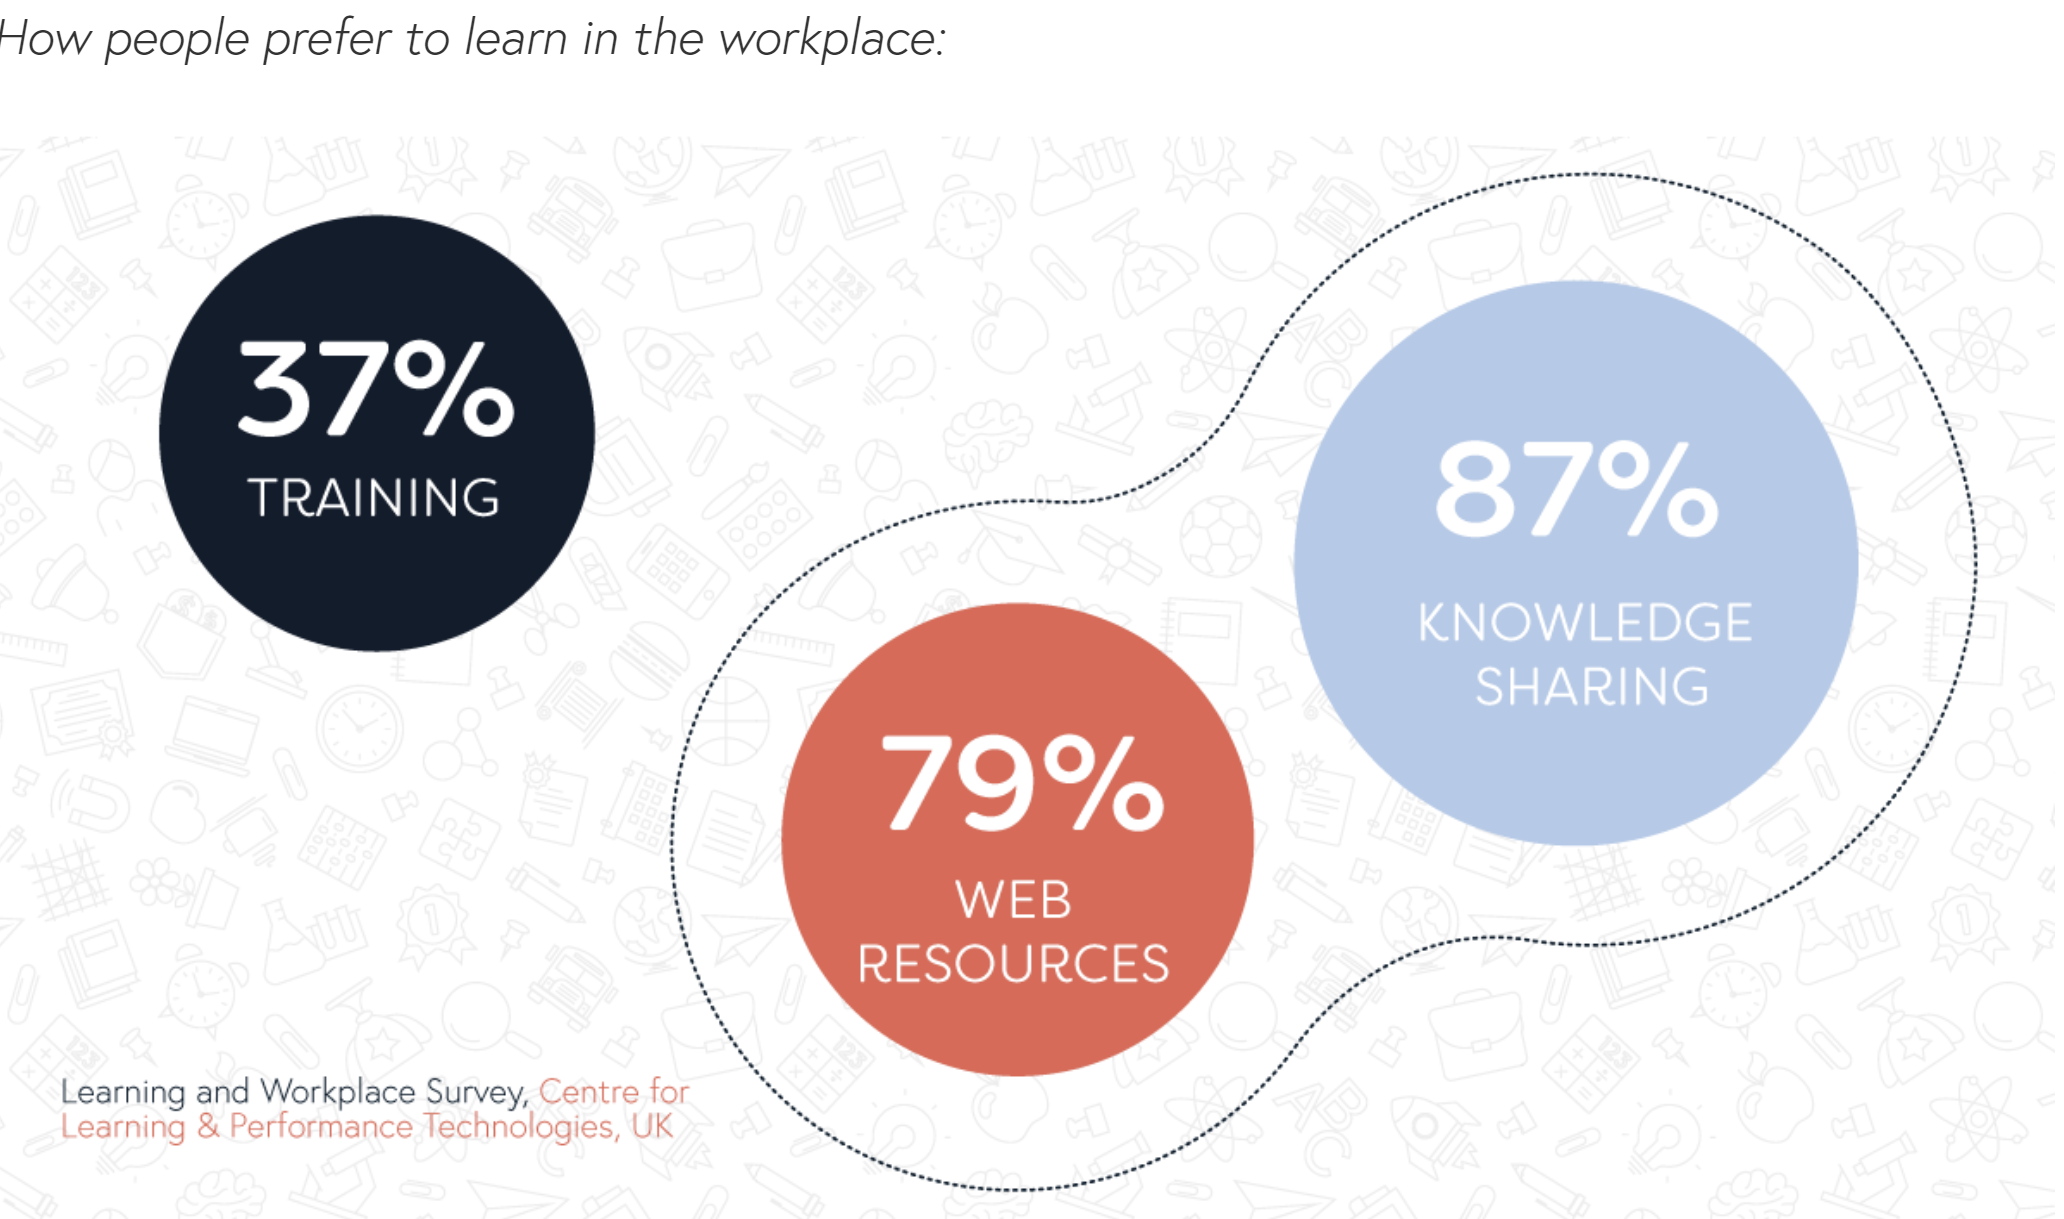 Learning at workplace - data